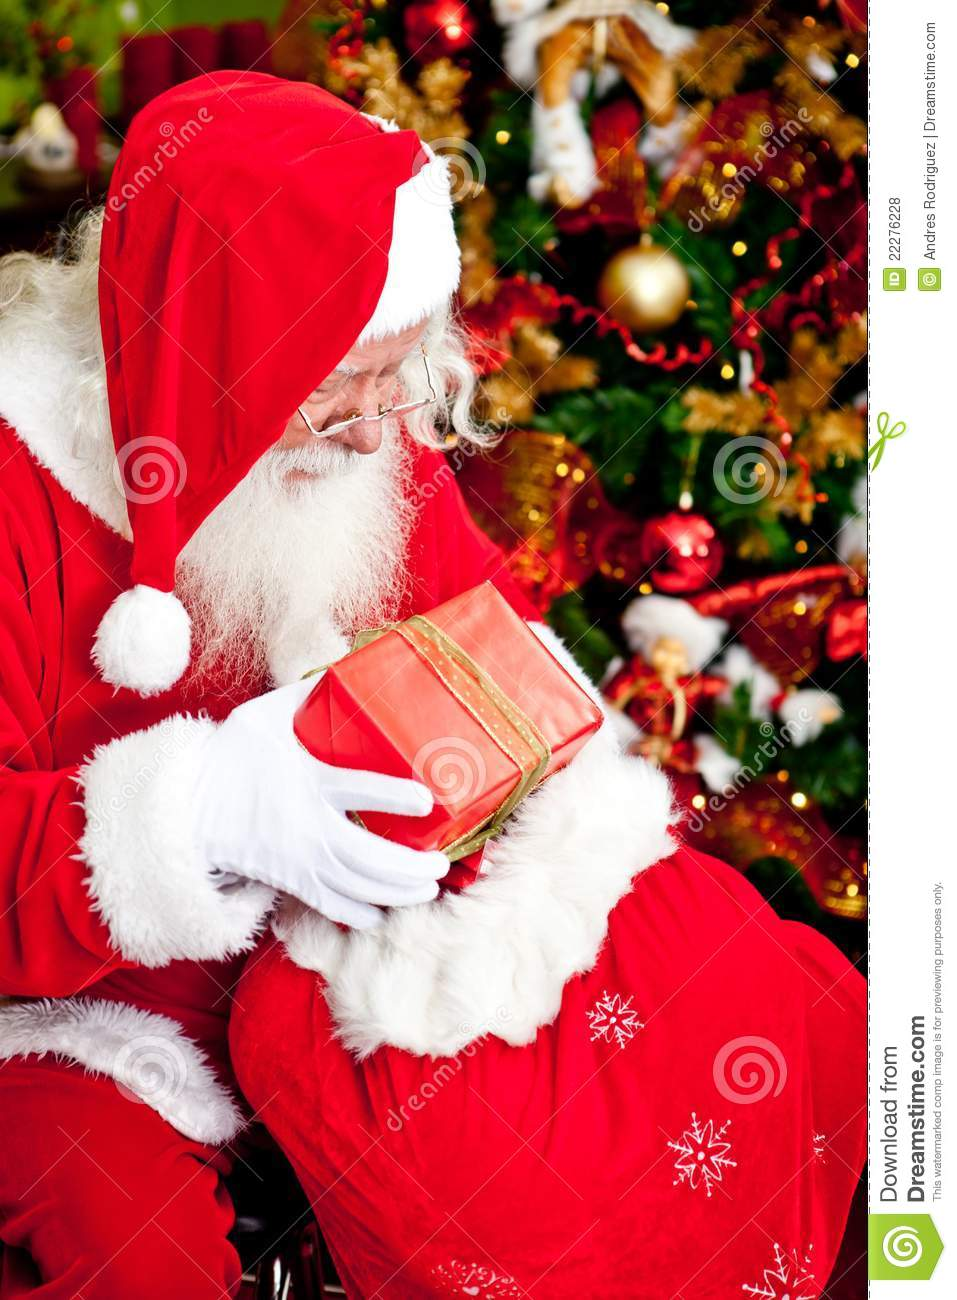 Santa Claus With Presents Stock Photo Image Of Cheerful